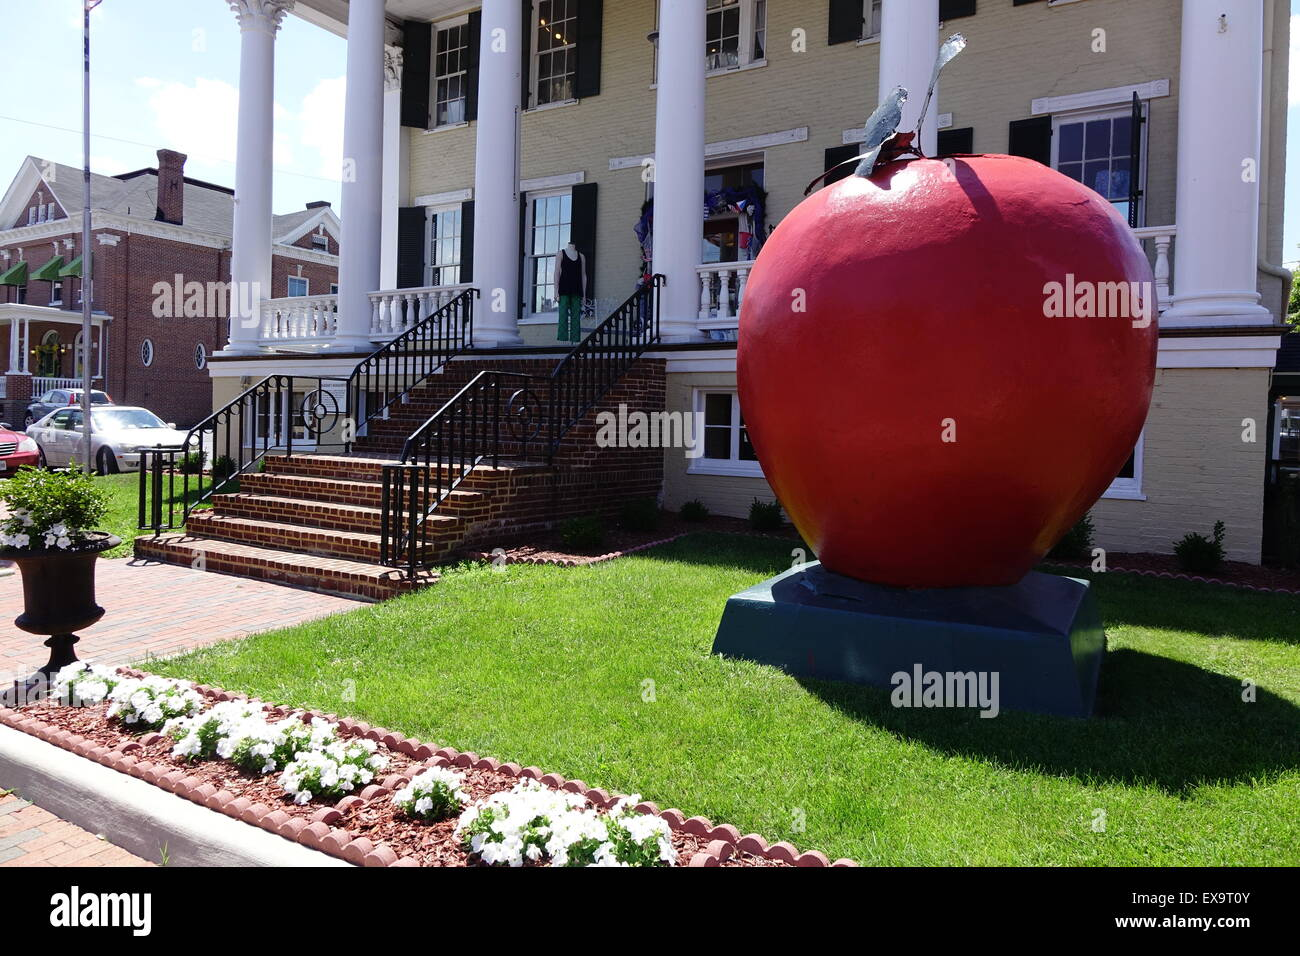 Giant red apple in front of the former headquarters of General Sheridan during the civil war, now used for offices - Stock Image